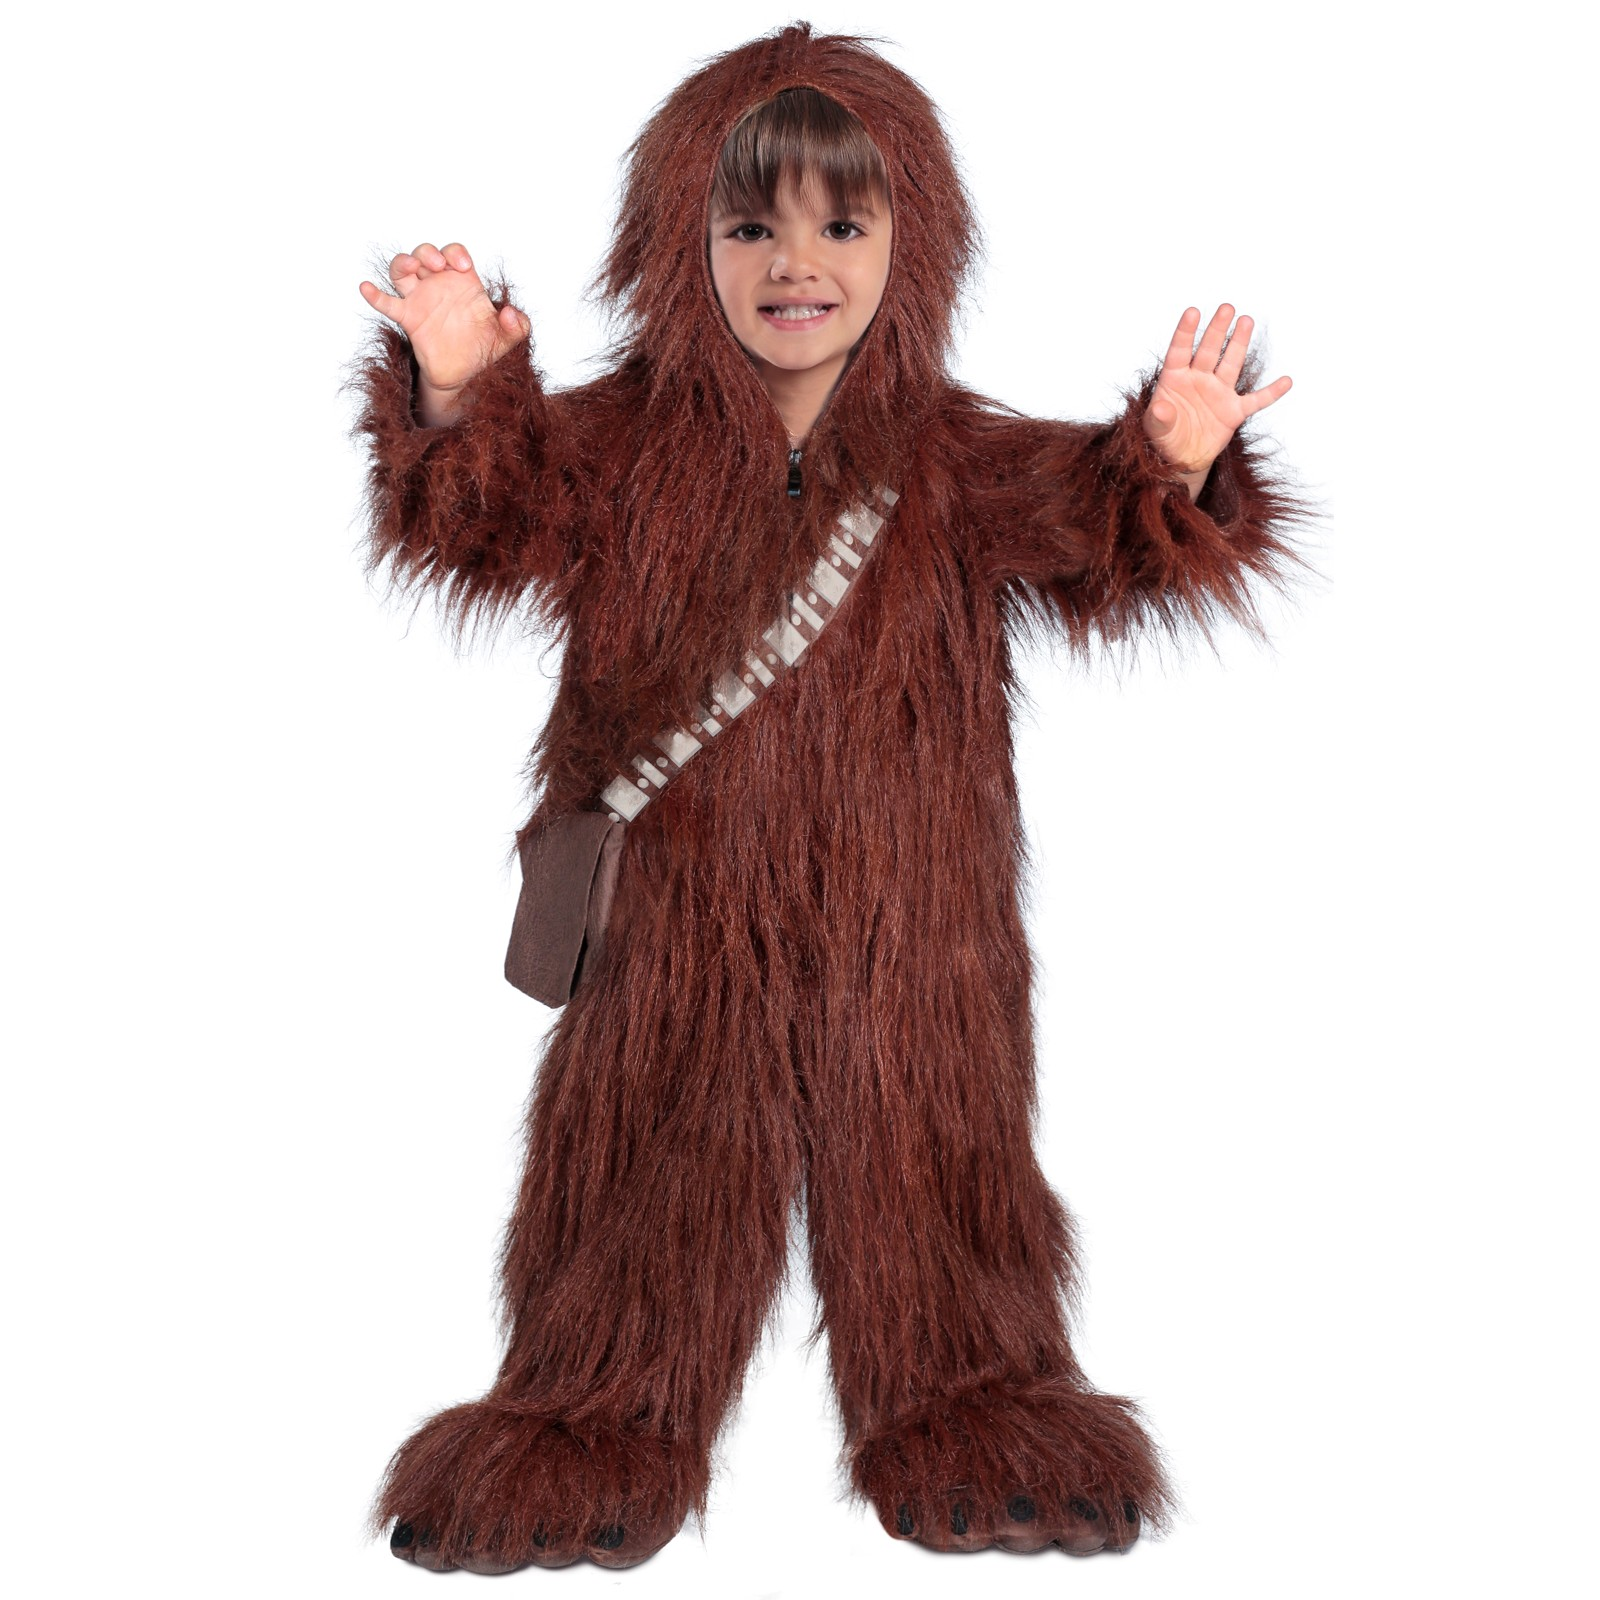 Child size Classic Star wars Premium Chewbacca Costume 4 sizes fnt